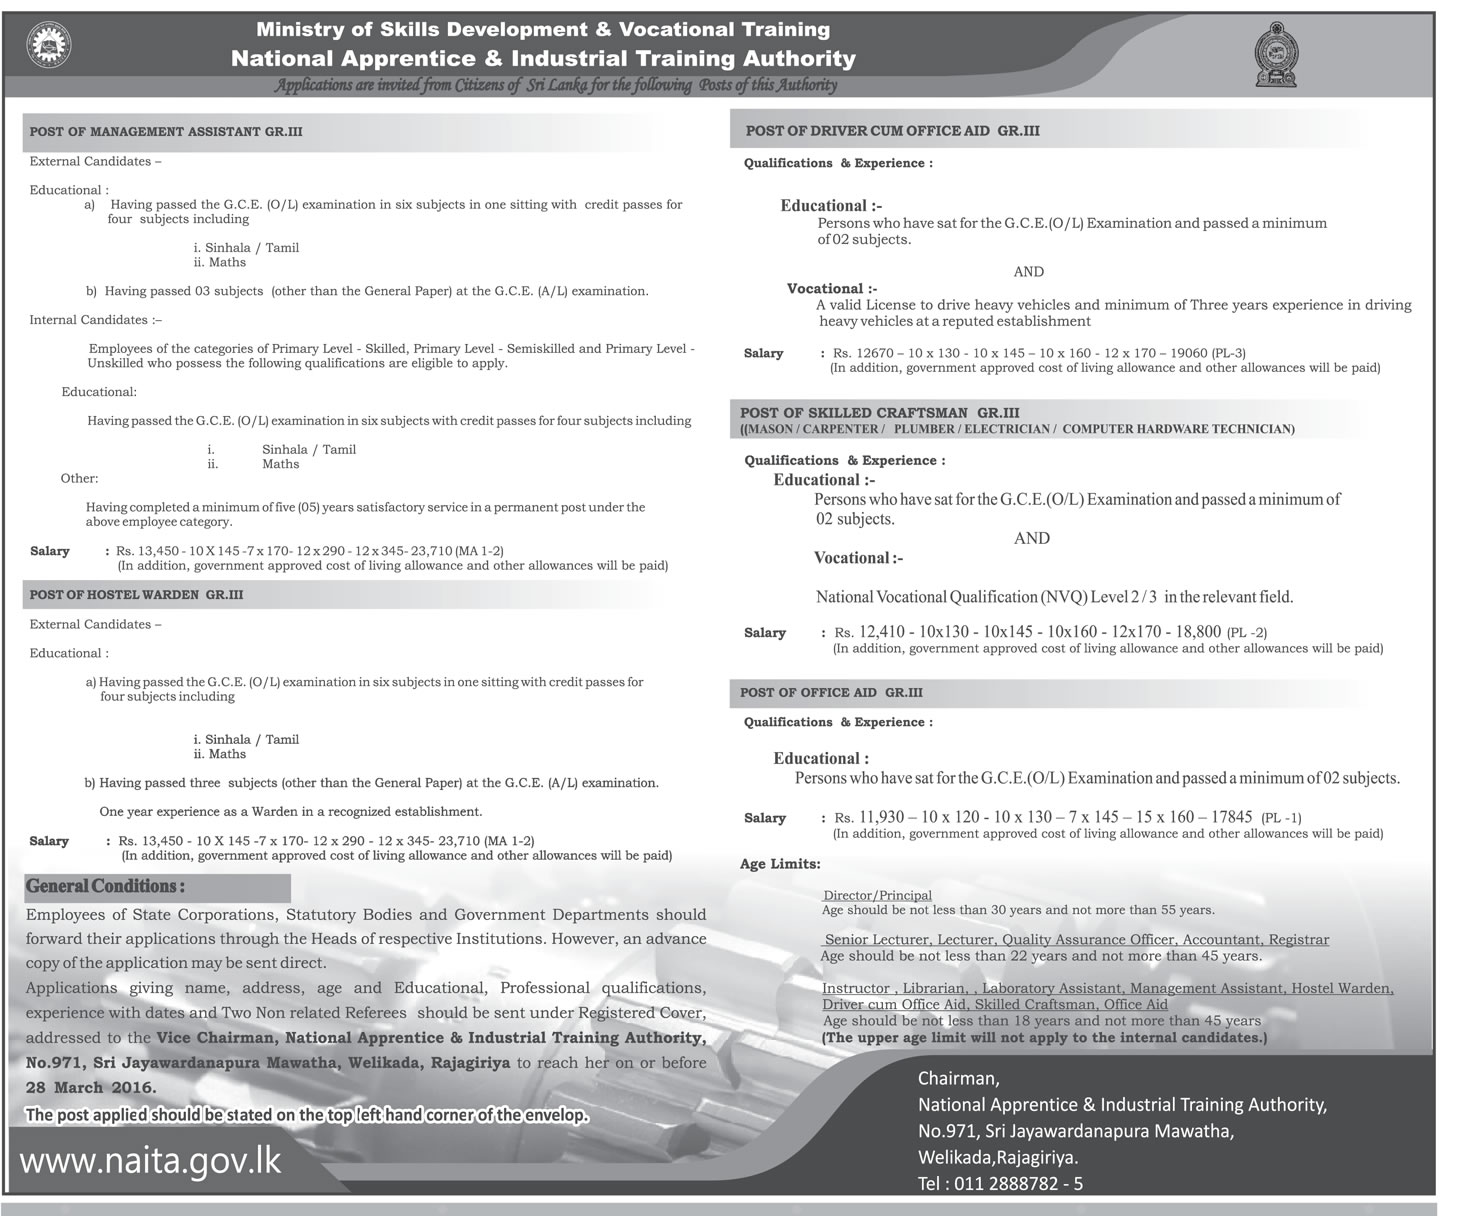 Vacancies – Management Assistant Gr.111- Hostel Warden Gr.111 – Driver Cum Office Aid Gr.111 - Skilled Craftsman Gr.111 - Office Aid Gr.111 - National Apprentice and Industrial Training Authority – Ministry of skills Development & Vocational Training